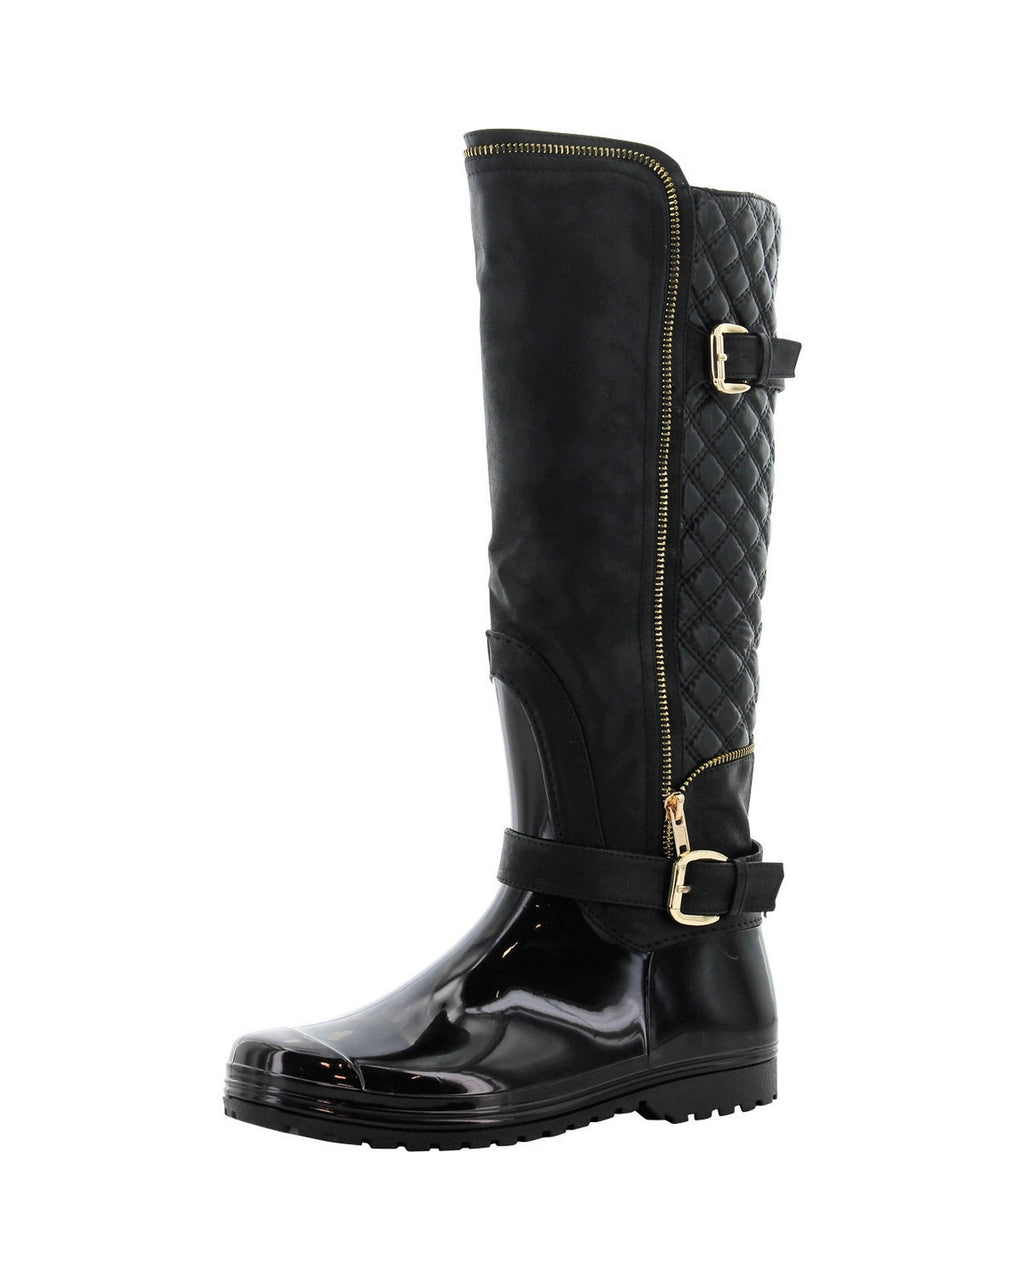 Henry Ferrera - Women's Fashion Quilted Rain Boots - Black - V.I.M. - 2